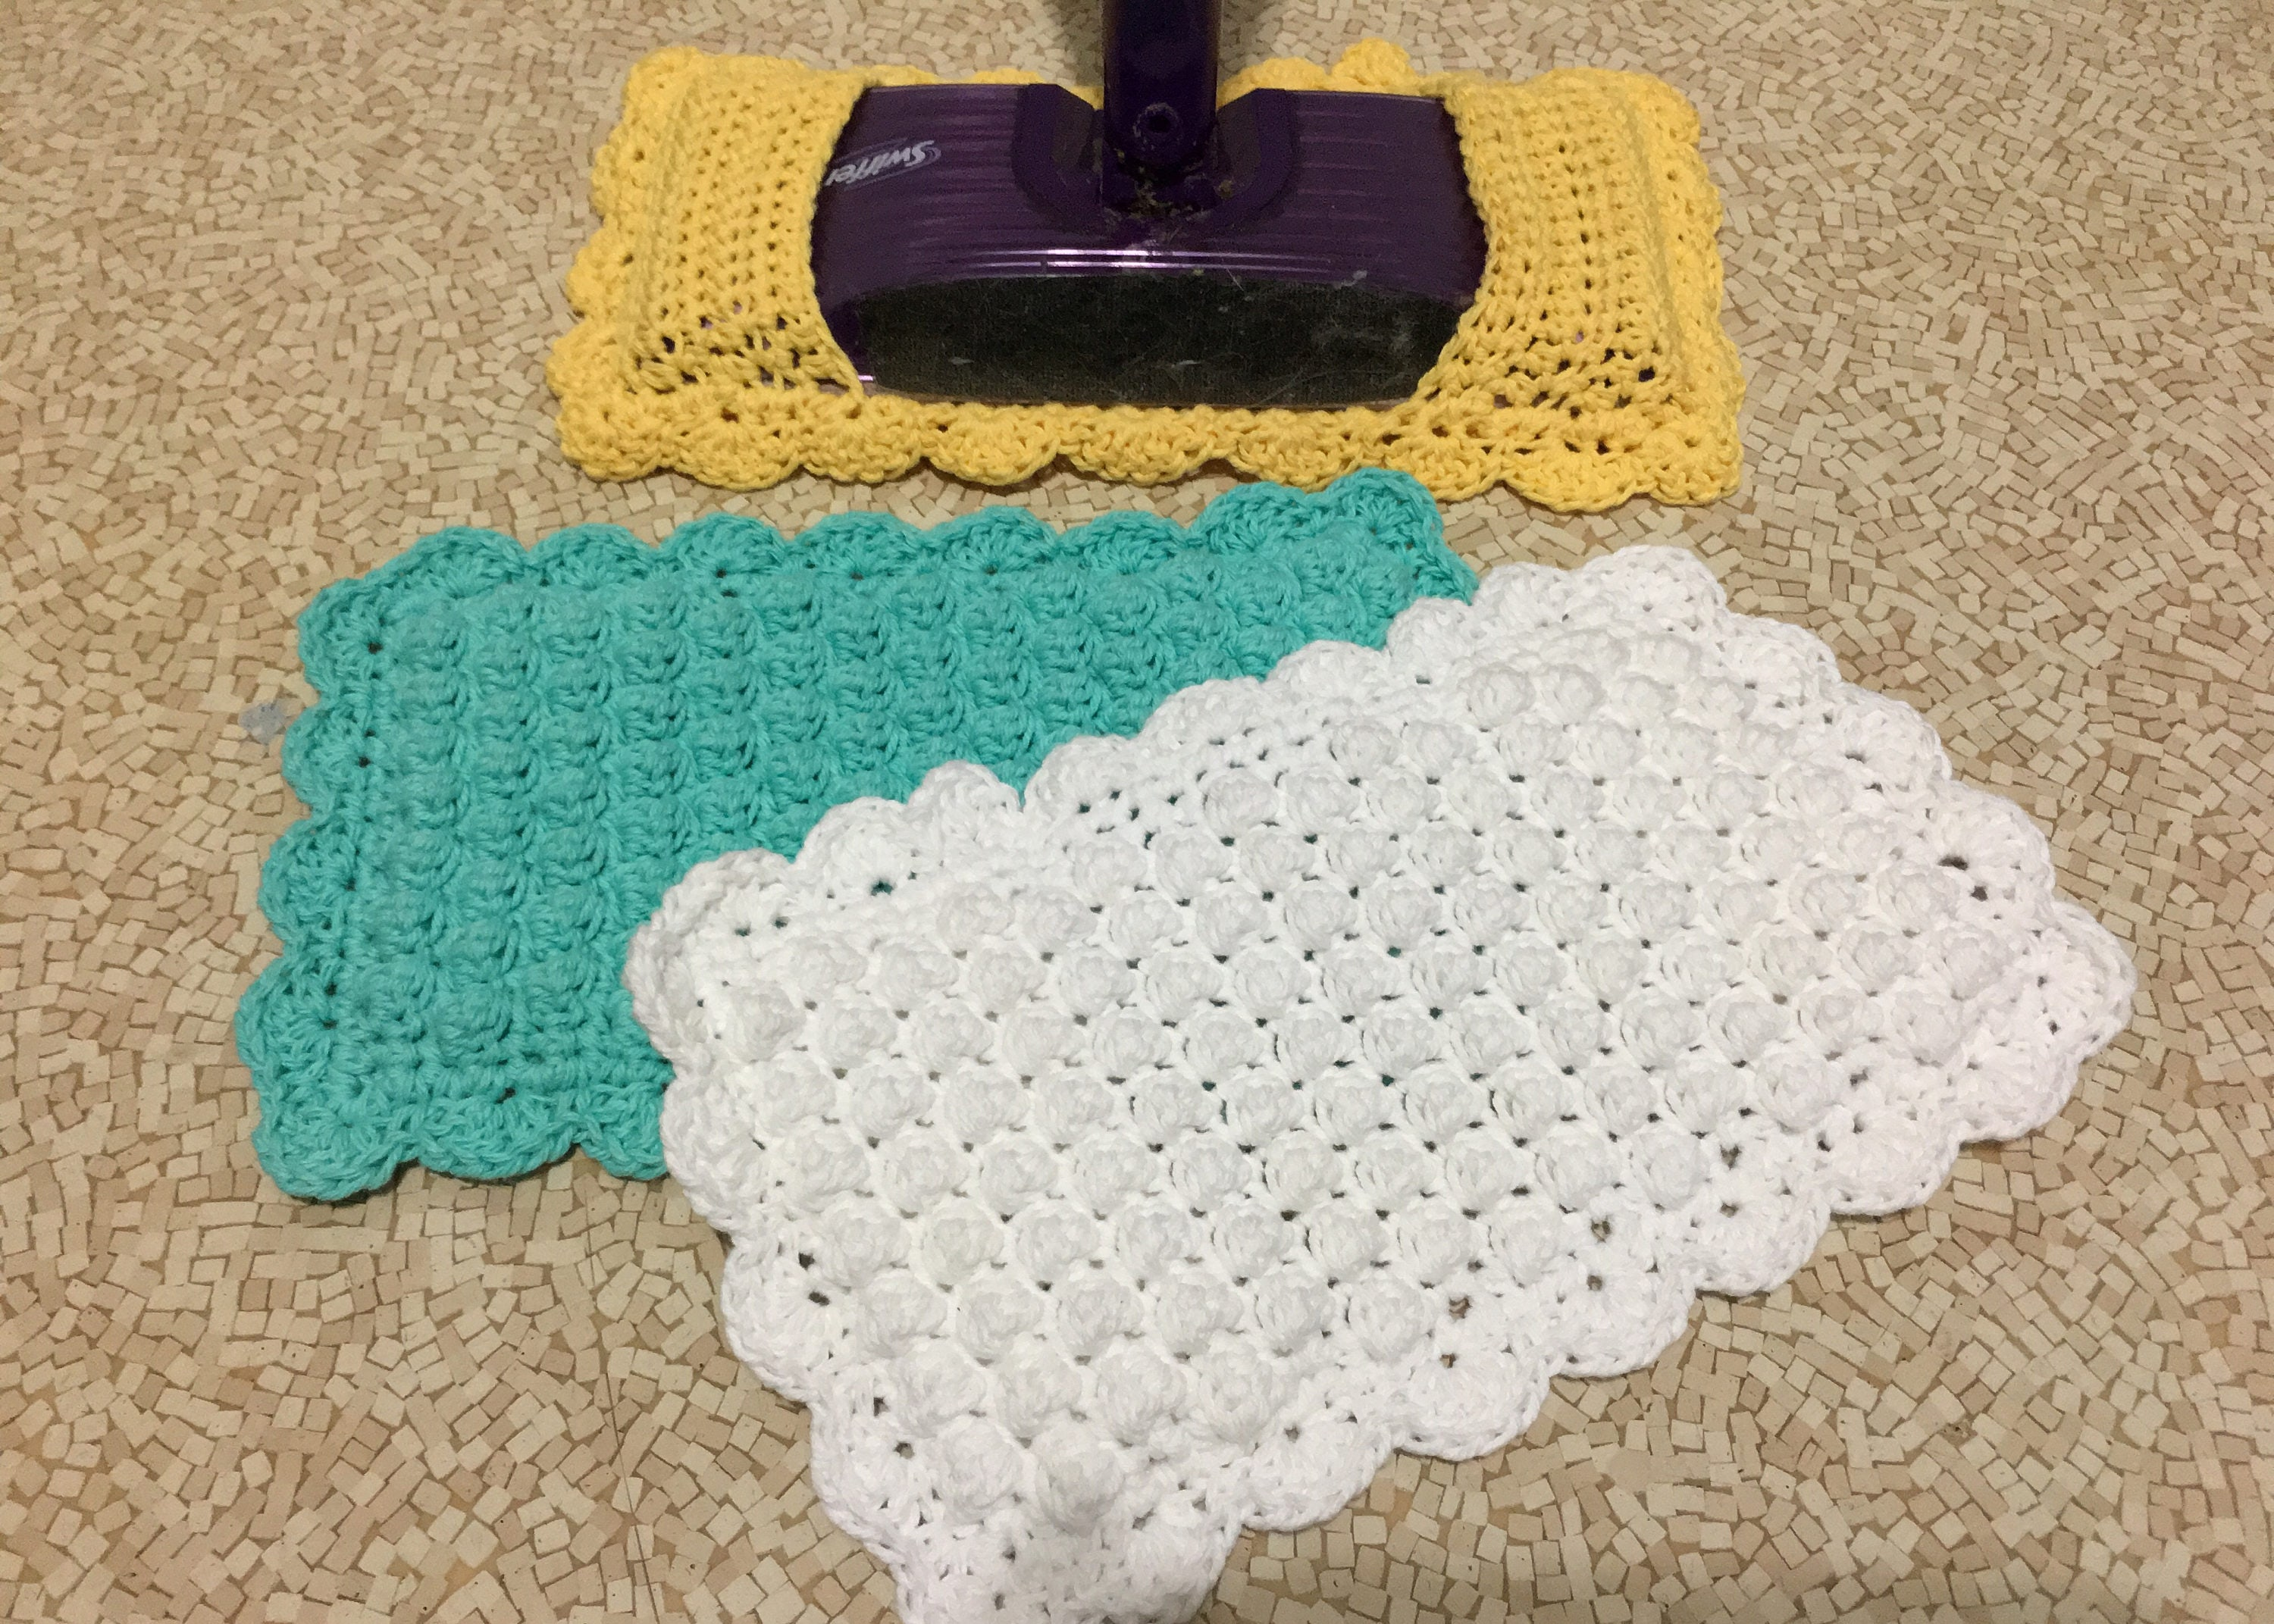 Swiffer Sweeper Cover With Baseboard Duster Crochet Pattern Etsy